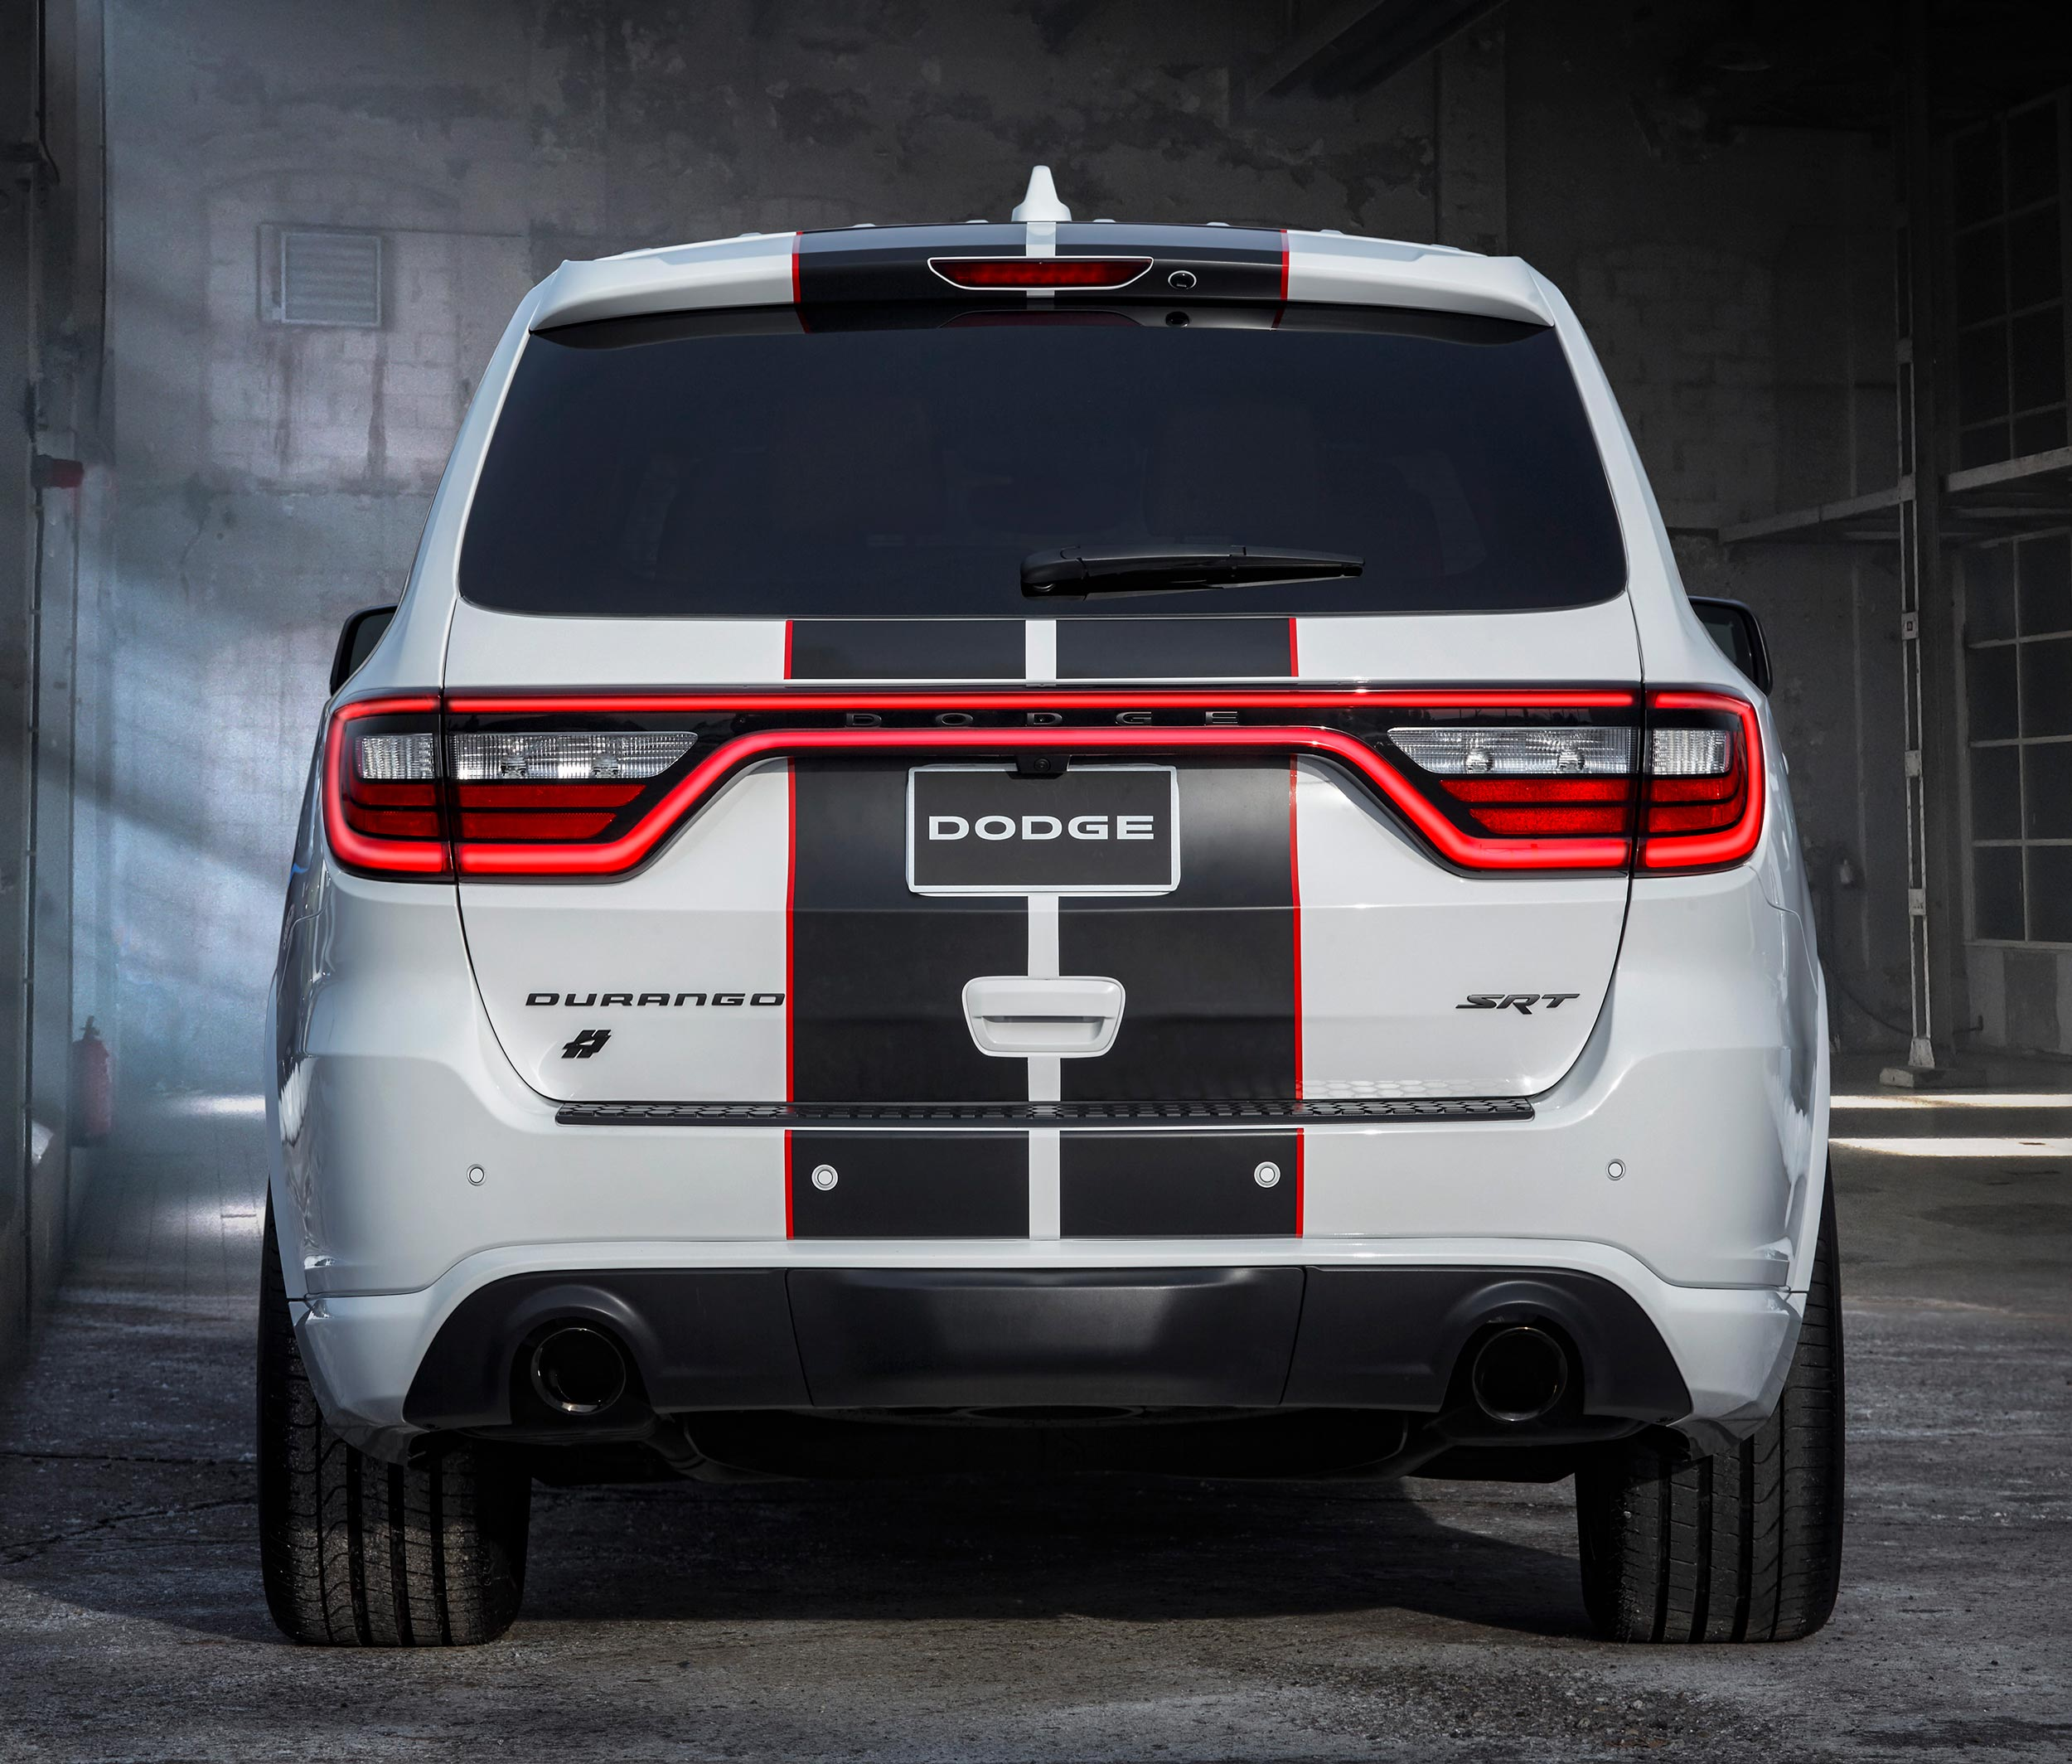 2020 Dodge Durango Srt Appearance Packages Because Stripes Make You Faster Probably